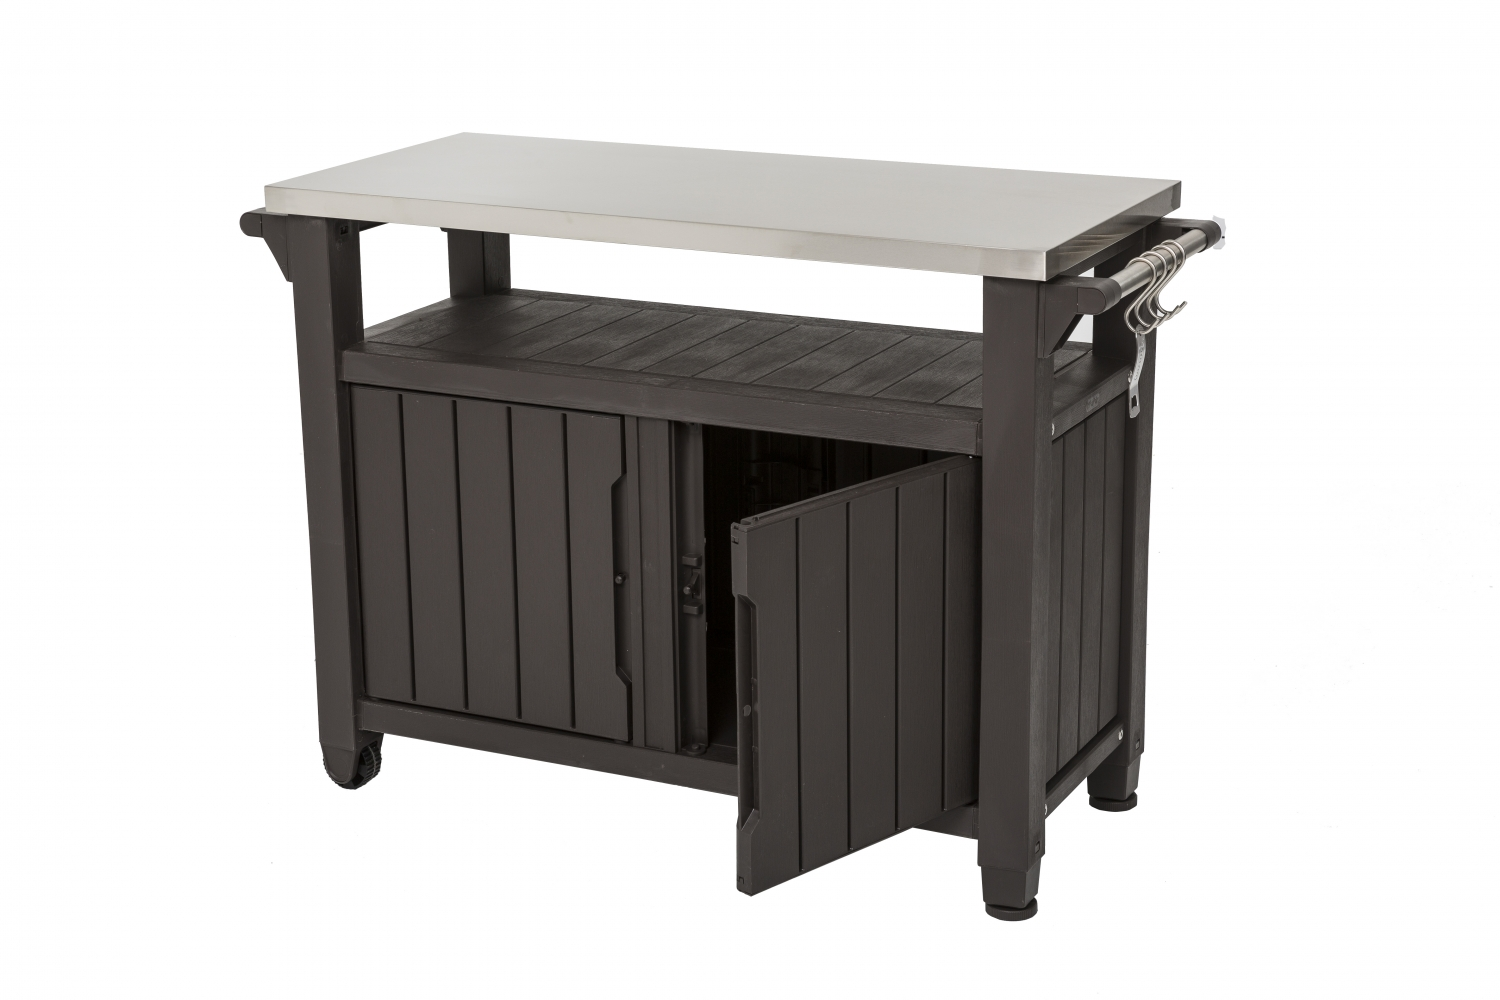 Bbq Tables With Stainless Steel Top Single Amp Double